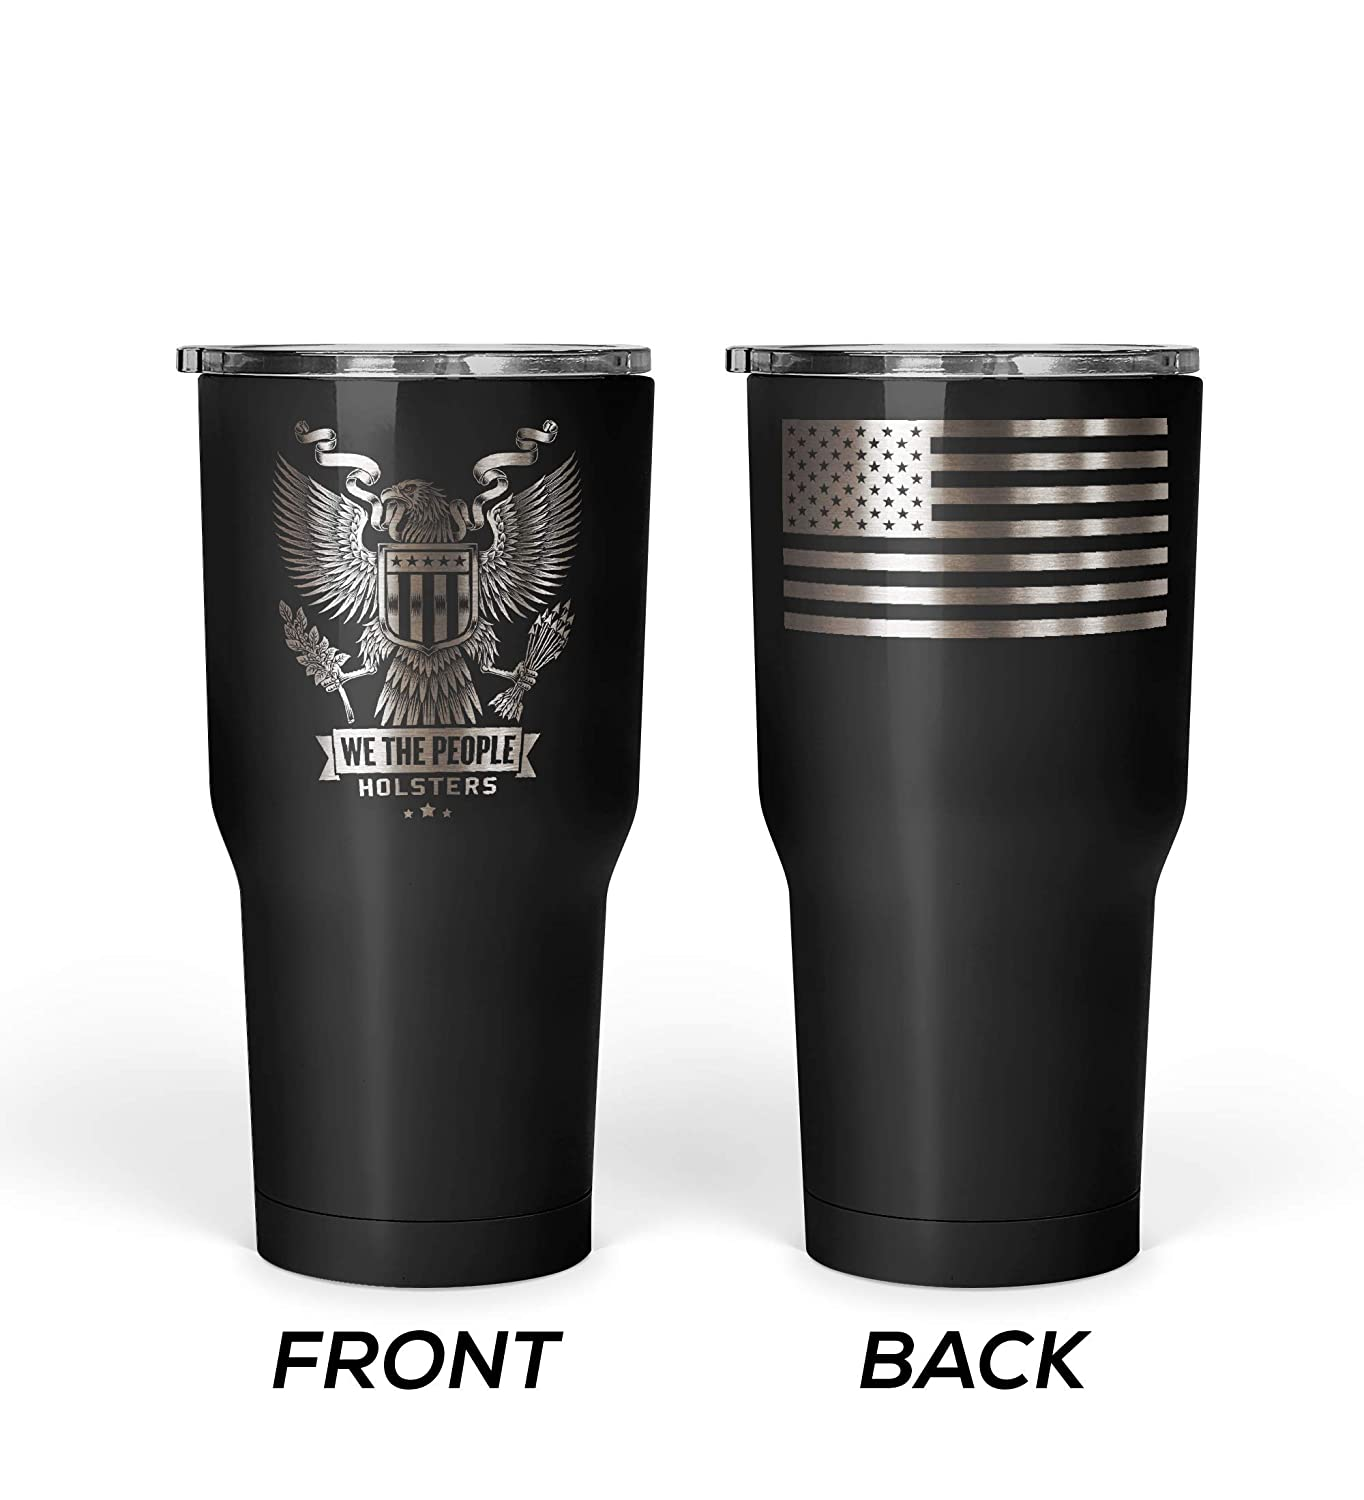 People We The Steel Travel Mug Stainless Insulated Flag With Oz Patriotic American Usa Emblem Coffee Eagle Tumbler 30 67ybfg